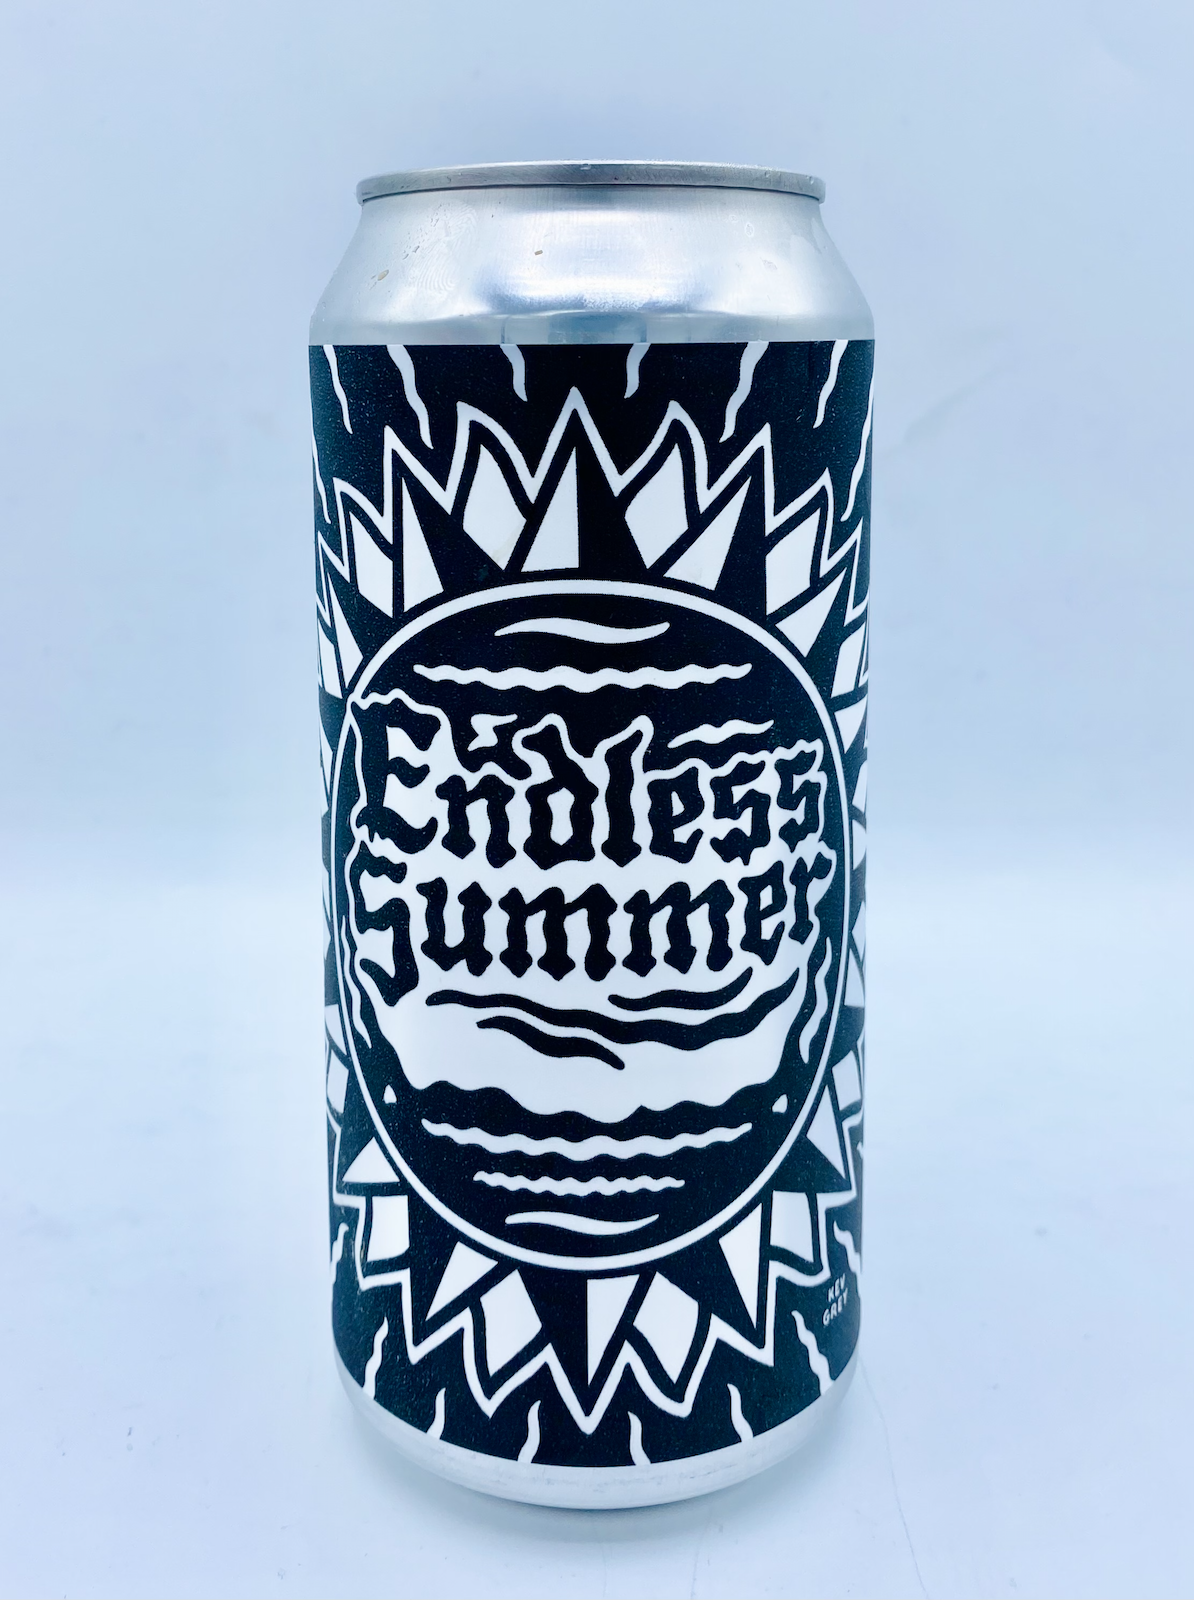 Black Iris Brewery - Endless Summer 4.5%